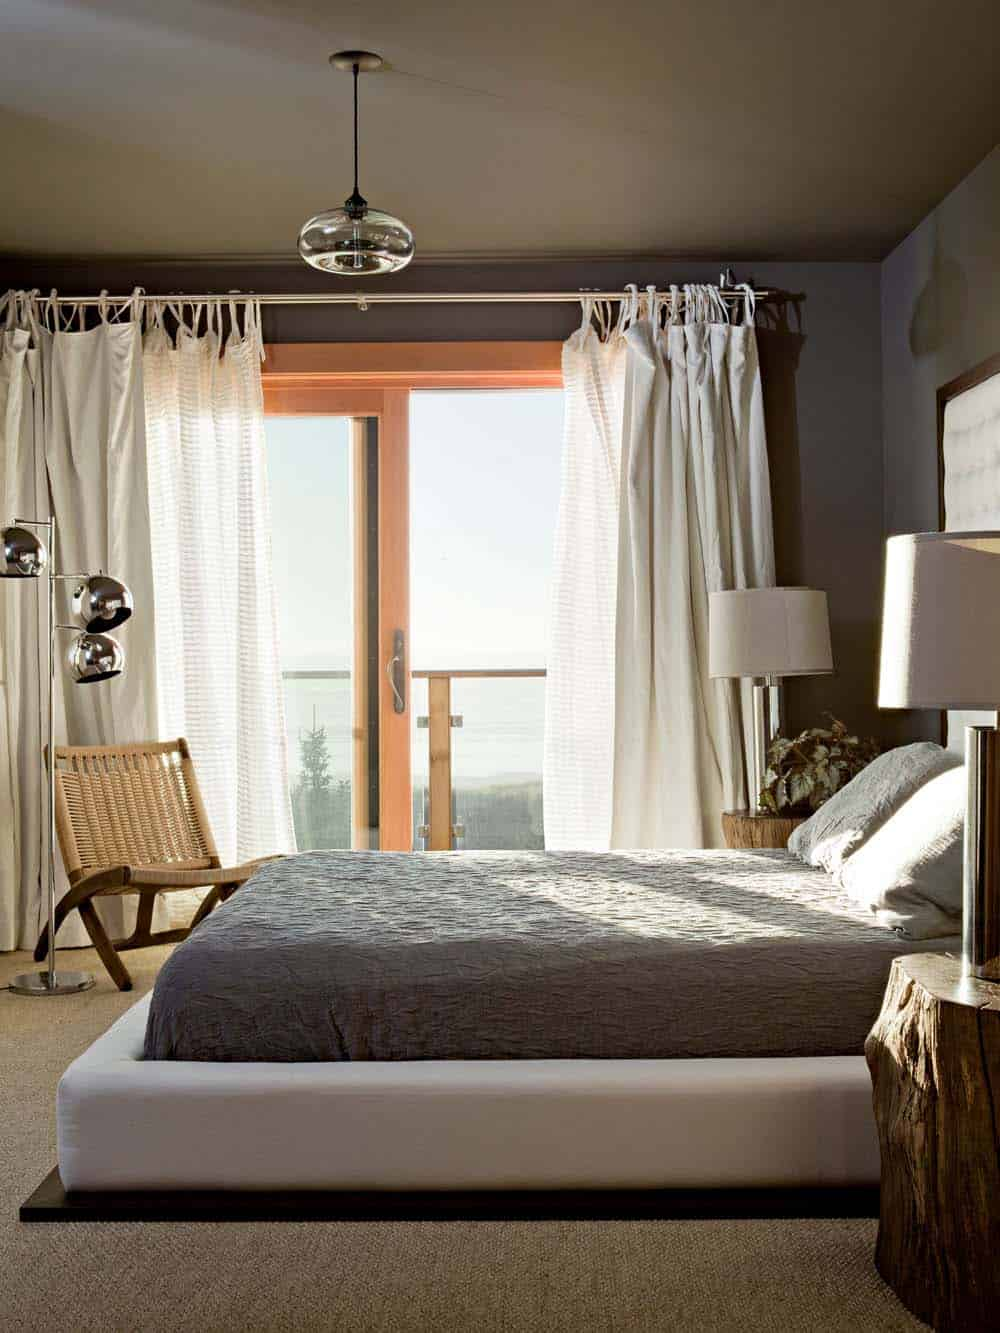 Coastal Home Design-Jessica Helgerson Interior Design-13-1 Kindesign